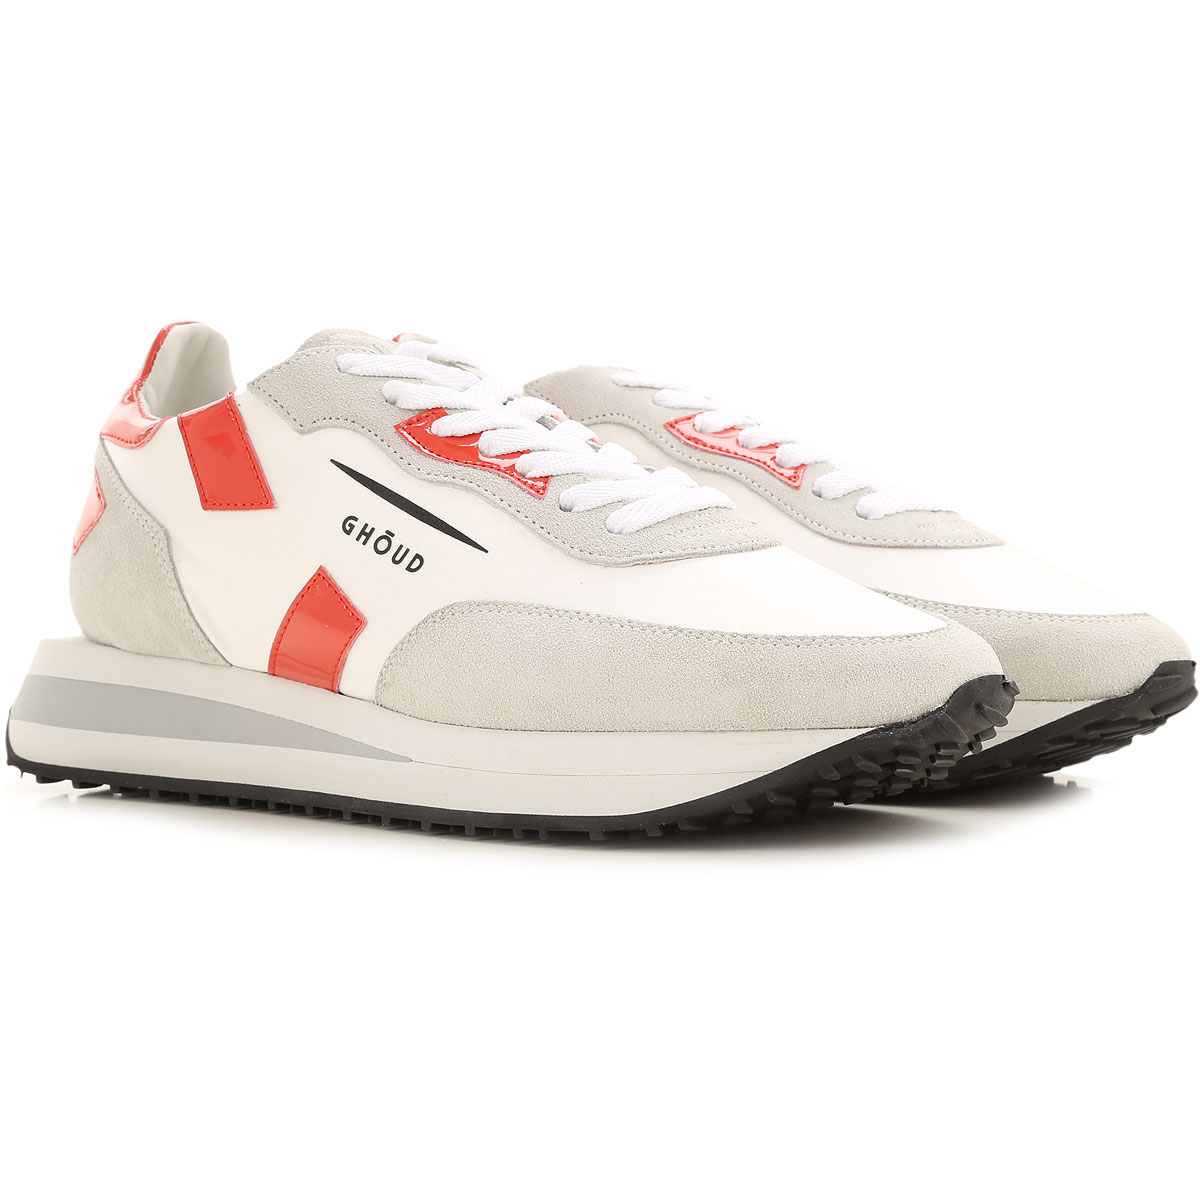 Ghoud Sneakers for Women On Sale, White, Leather, 2019, 10 6 7 8 9